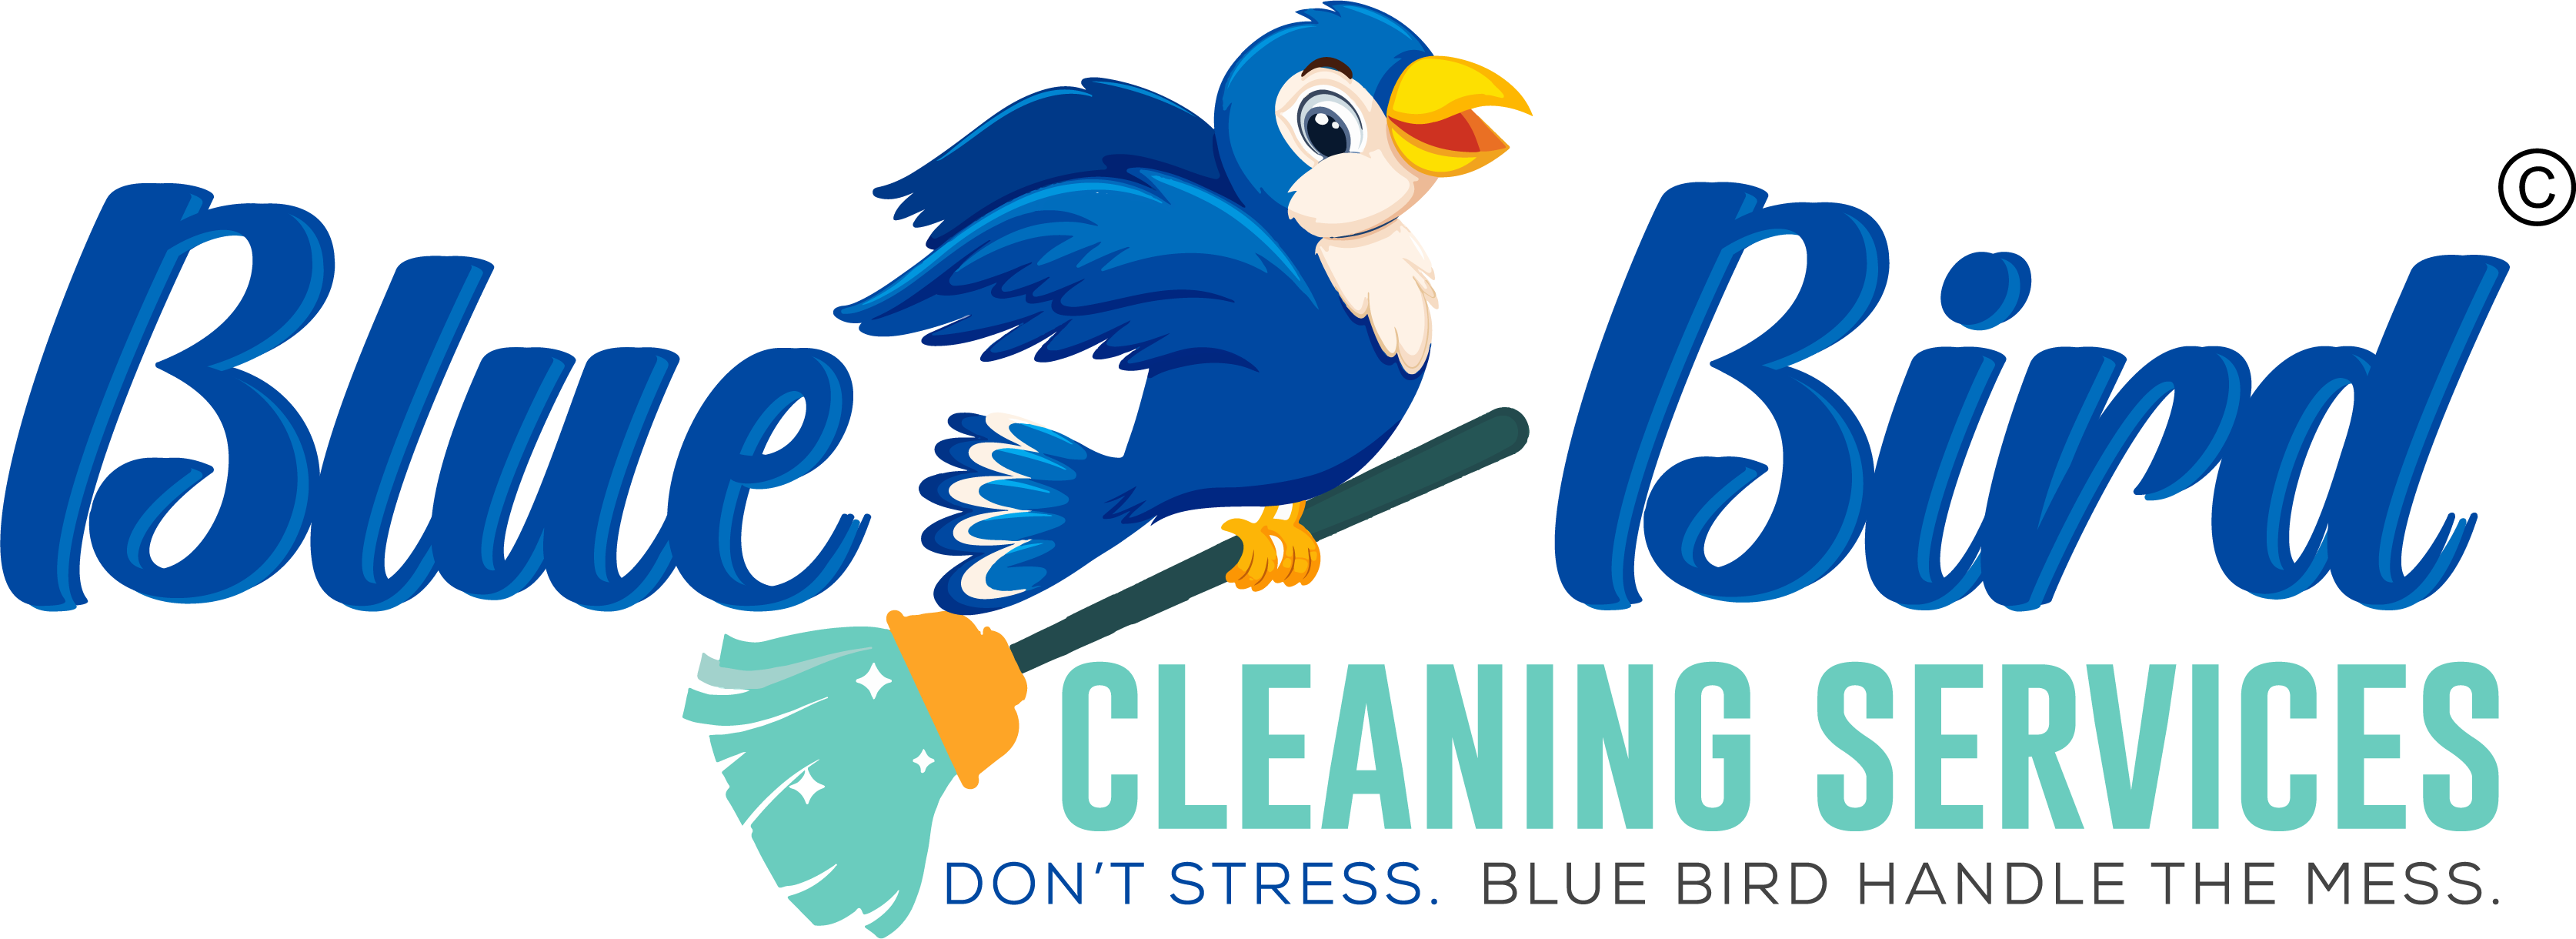 Blue Bird Cleaning Services Australia